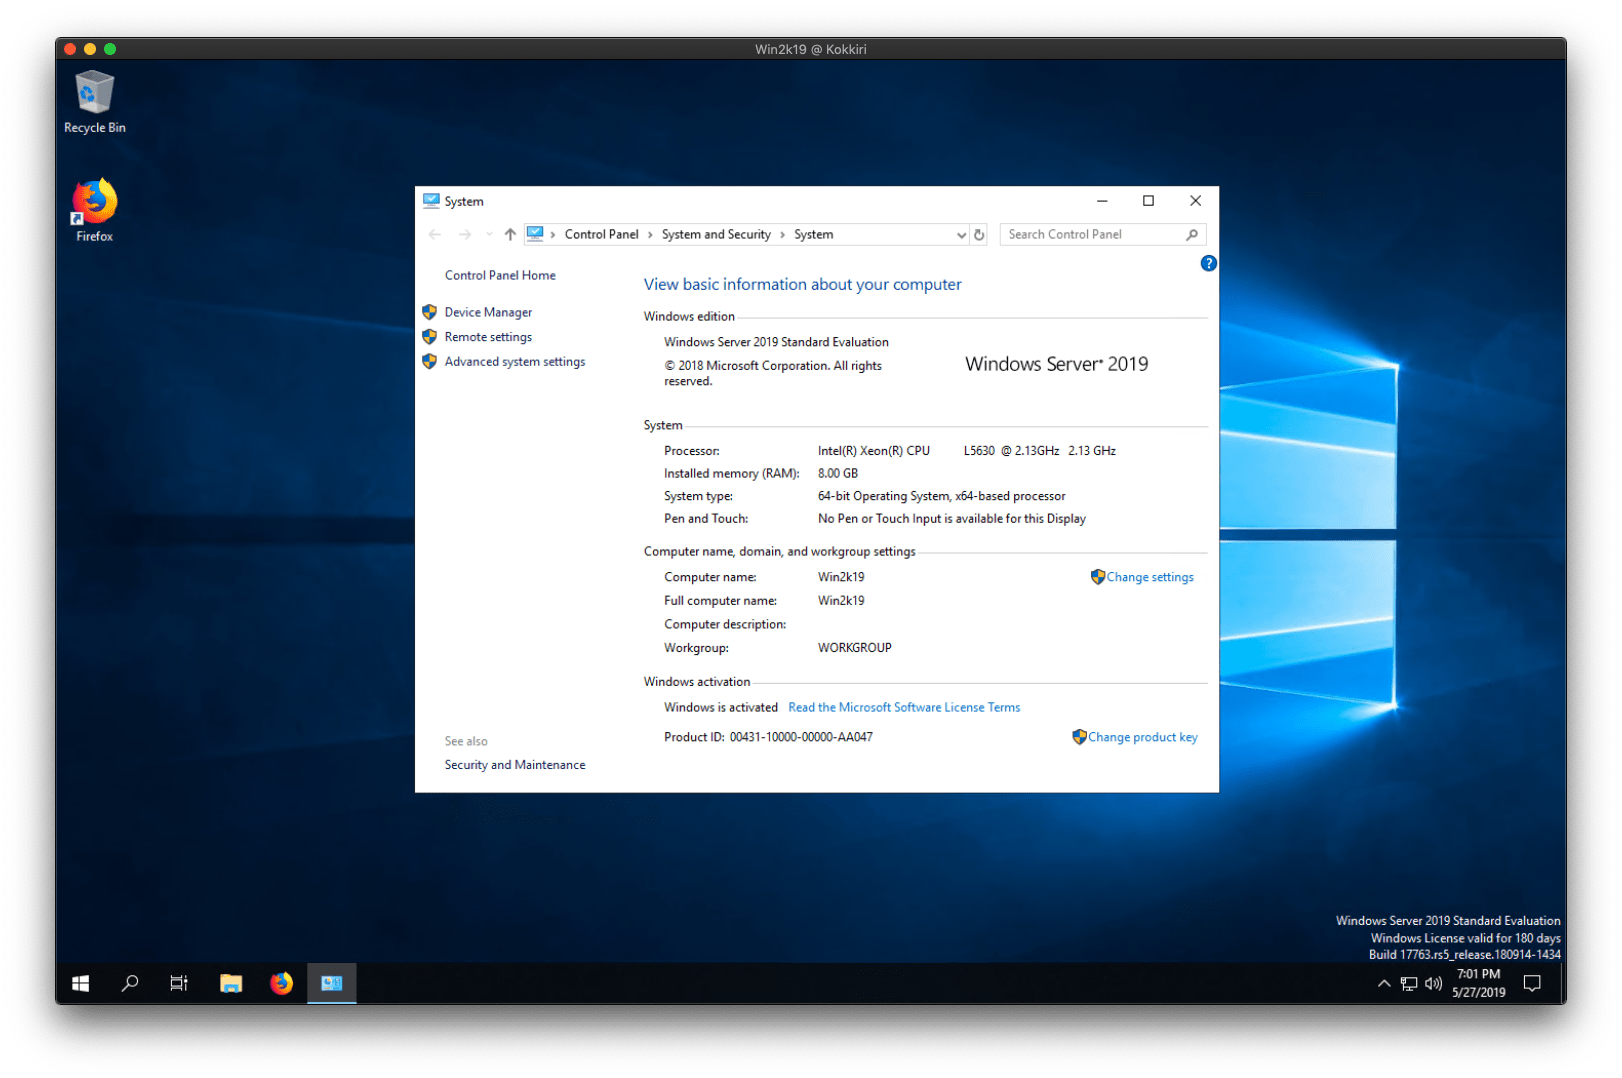 Recommended settings for Windows 10 and 2019 Server on Proxmox